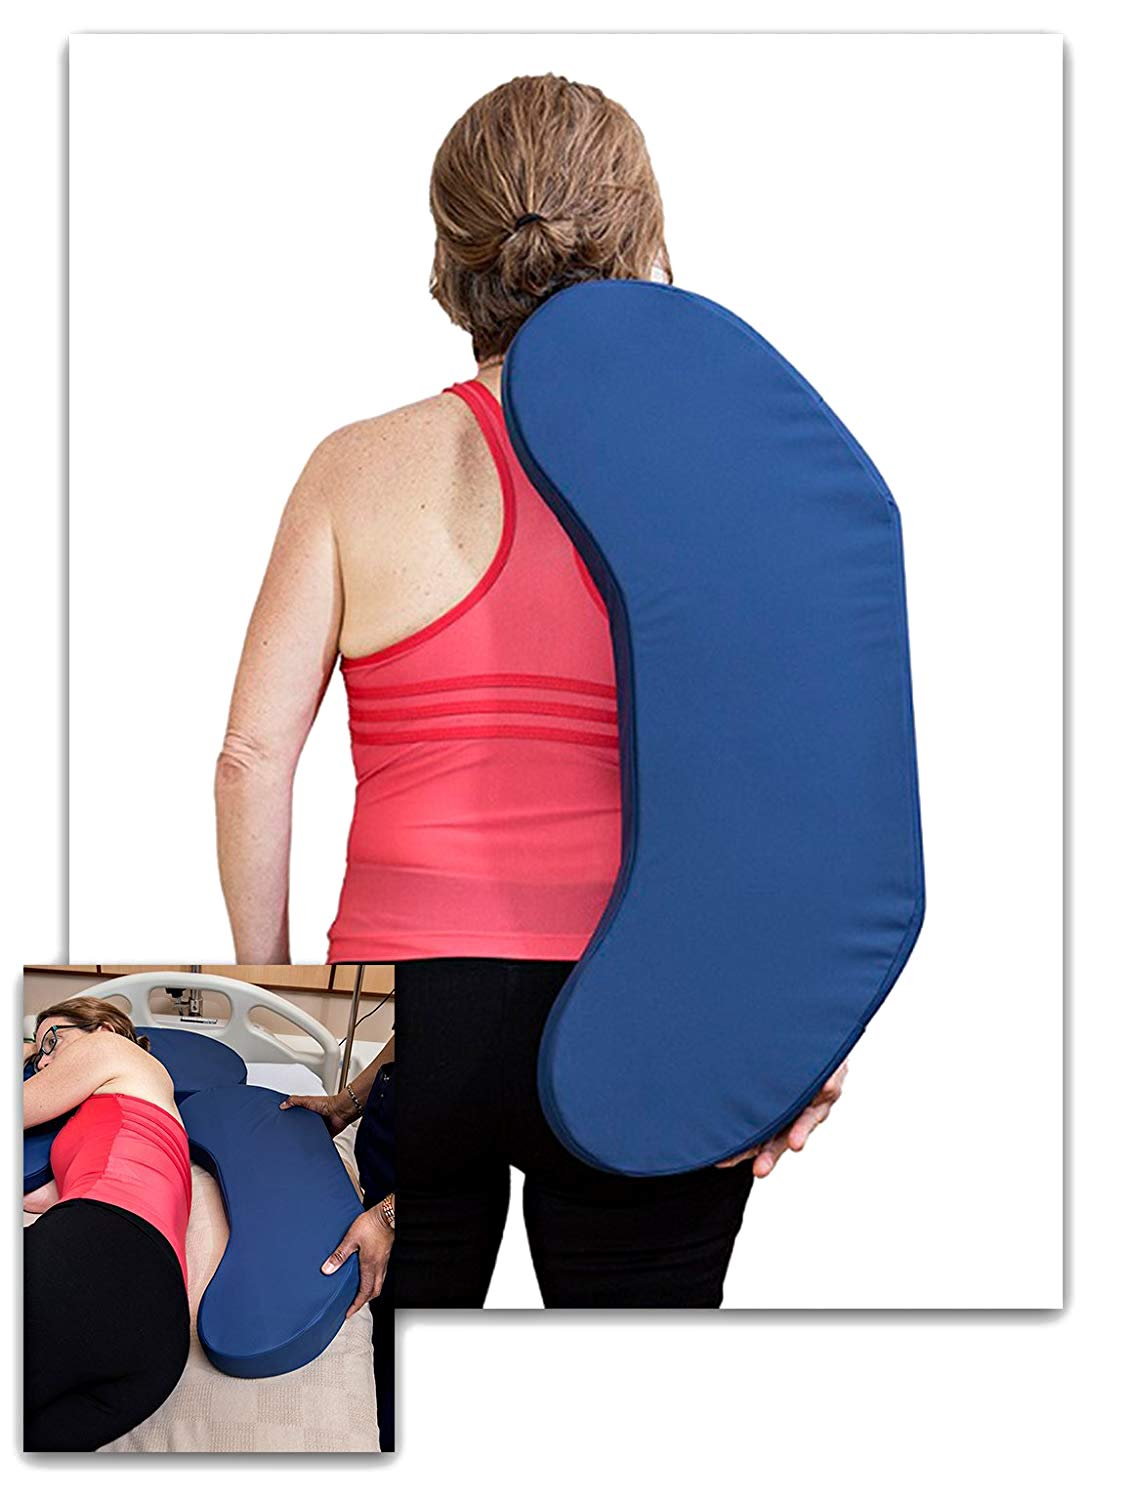 Jewell Nursing Solutions Turning Wedge for Patients – Positioning Hospital Pad with Contoured Sacral Coccyx Area and Pressure Distribution Layered Foam to Deter Bed Sores